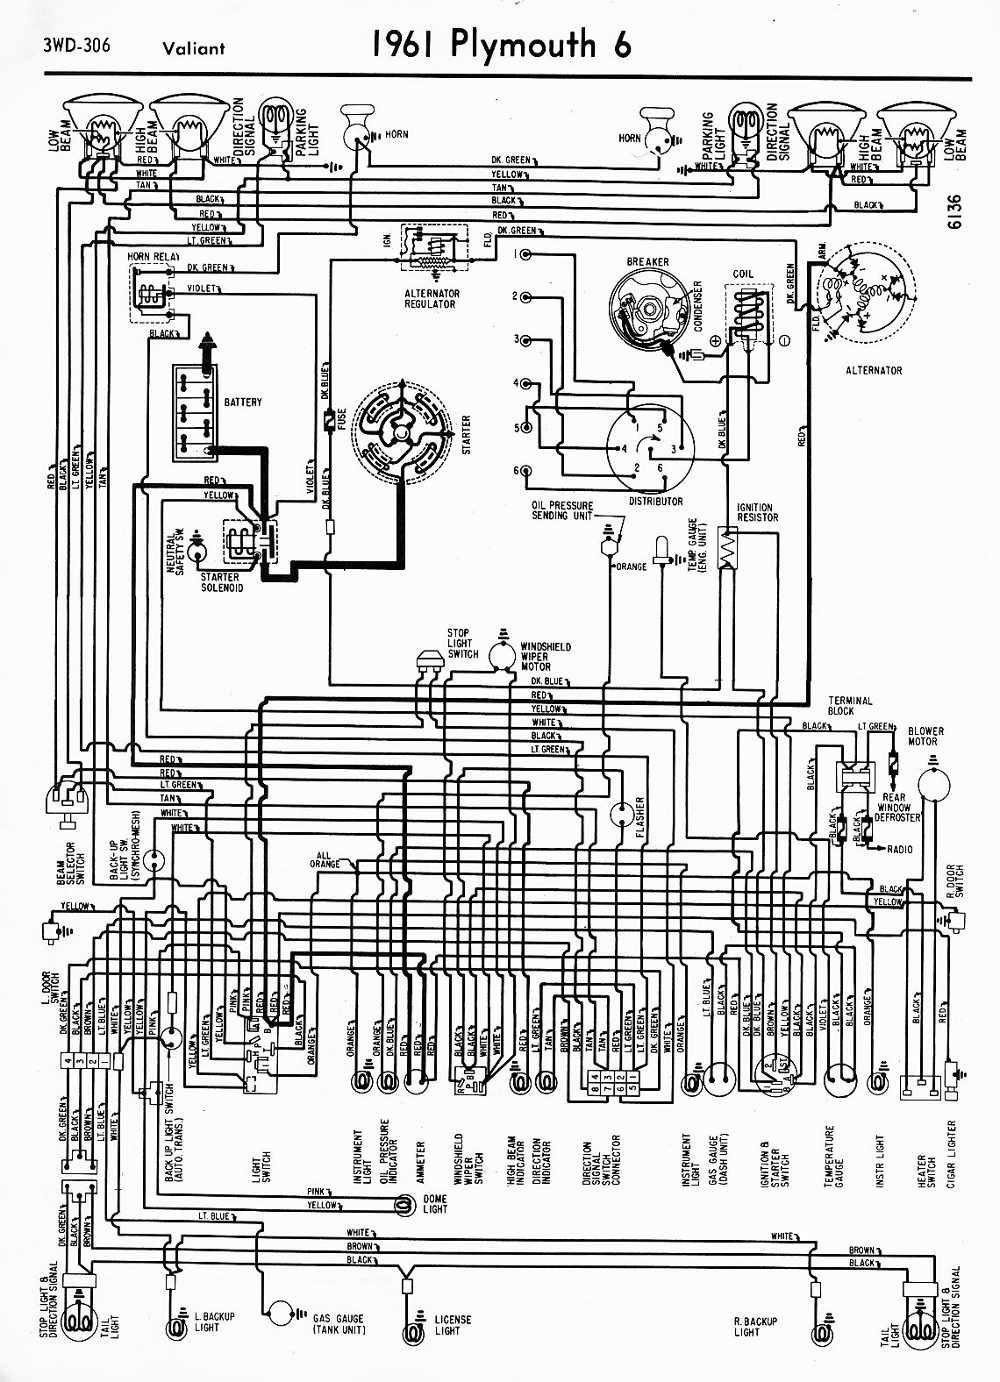 wiring diagrams of 1961 plymouth 6 valiant?t\\\=1508746019 1955 plymouth wiring diagram 1955 wiring diagrams instruction 1970 dodge coronet wiring diagram at readyjetset.co